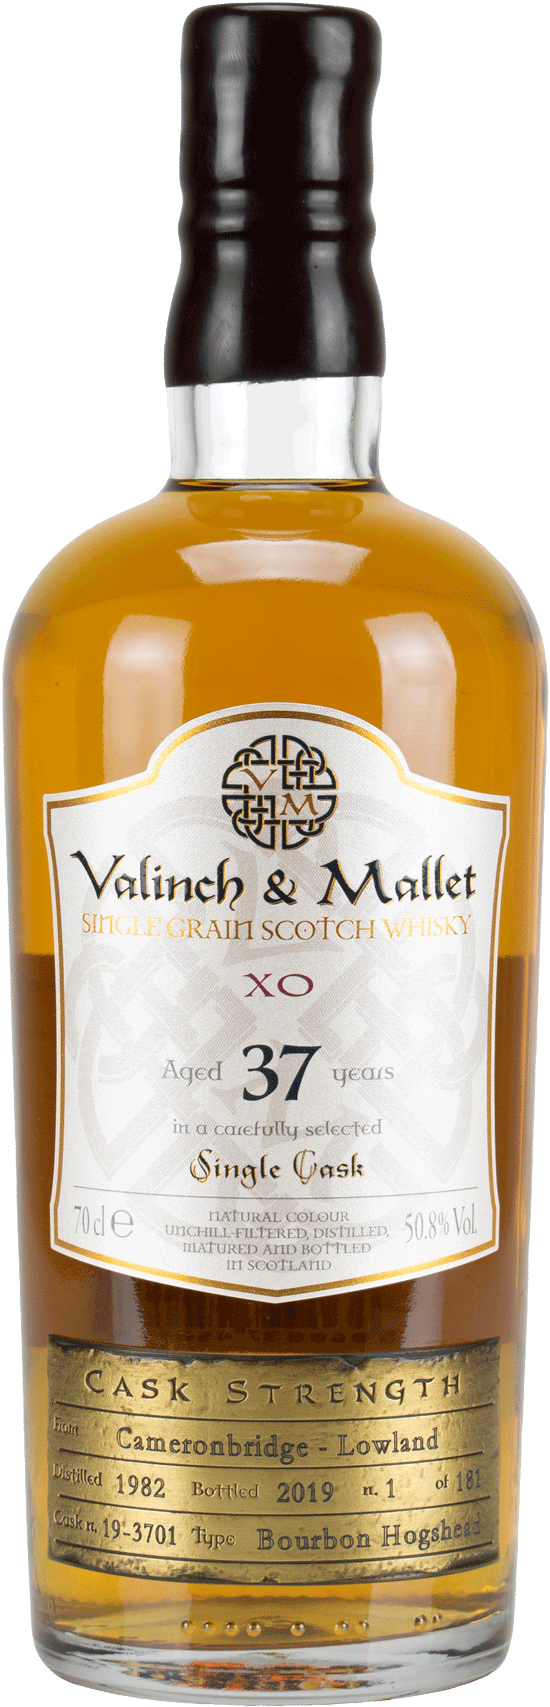 Cameronbridge 37 Valinch & Mallet Single Grain Scotch Whisky